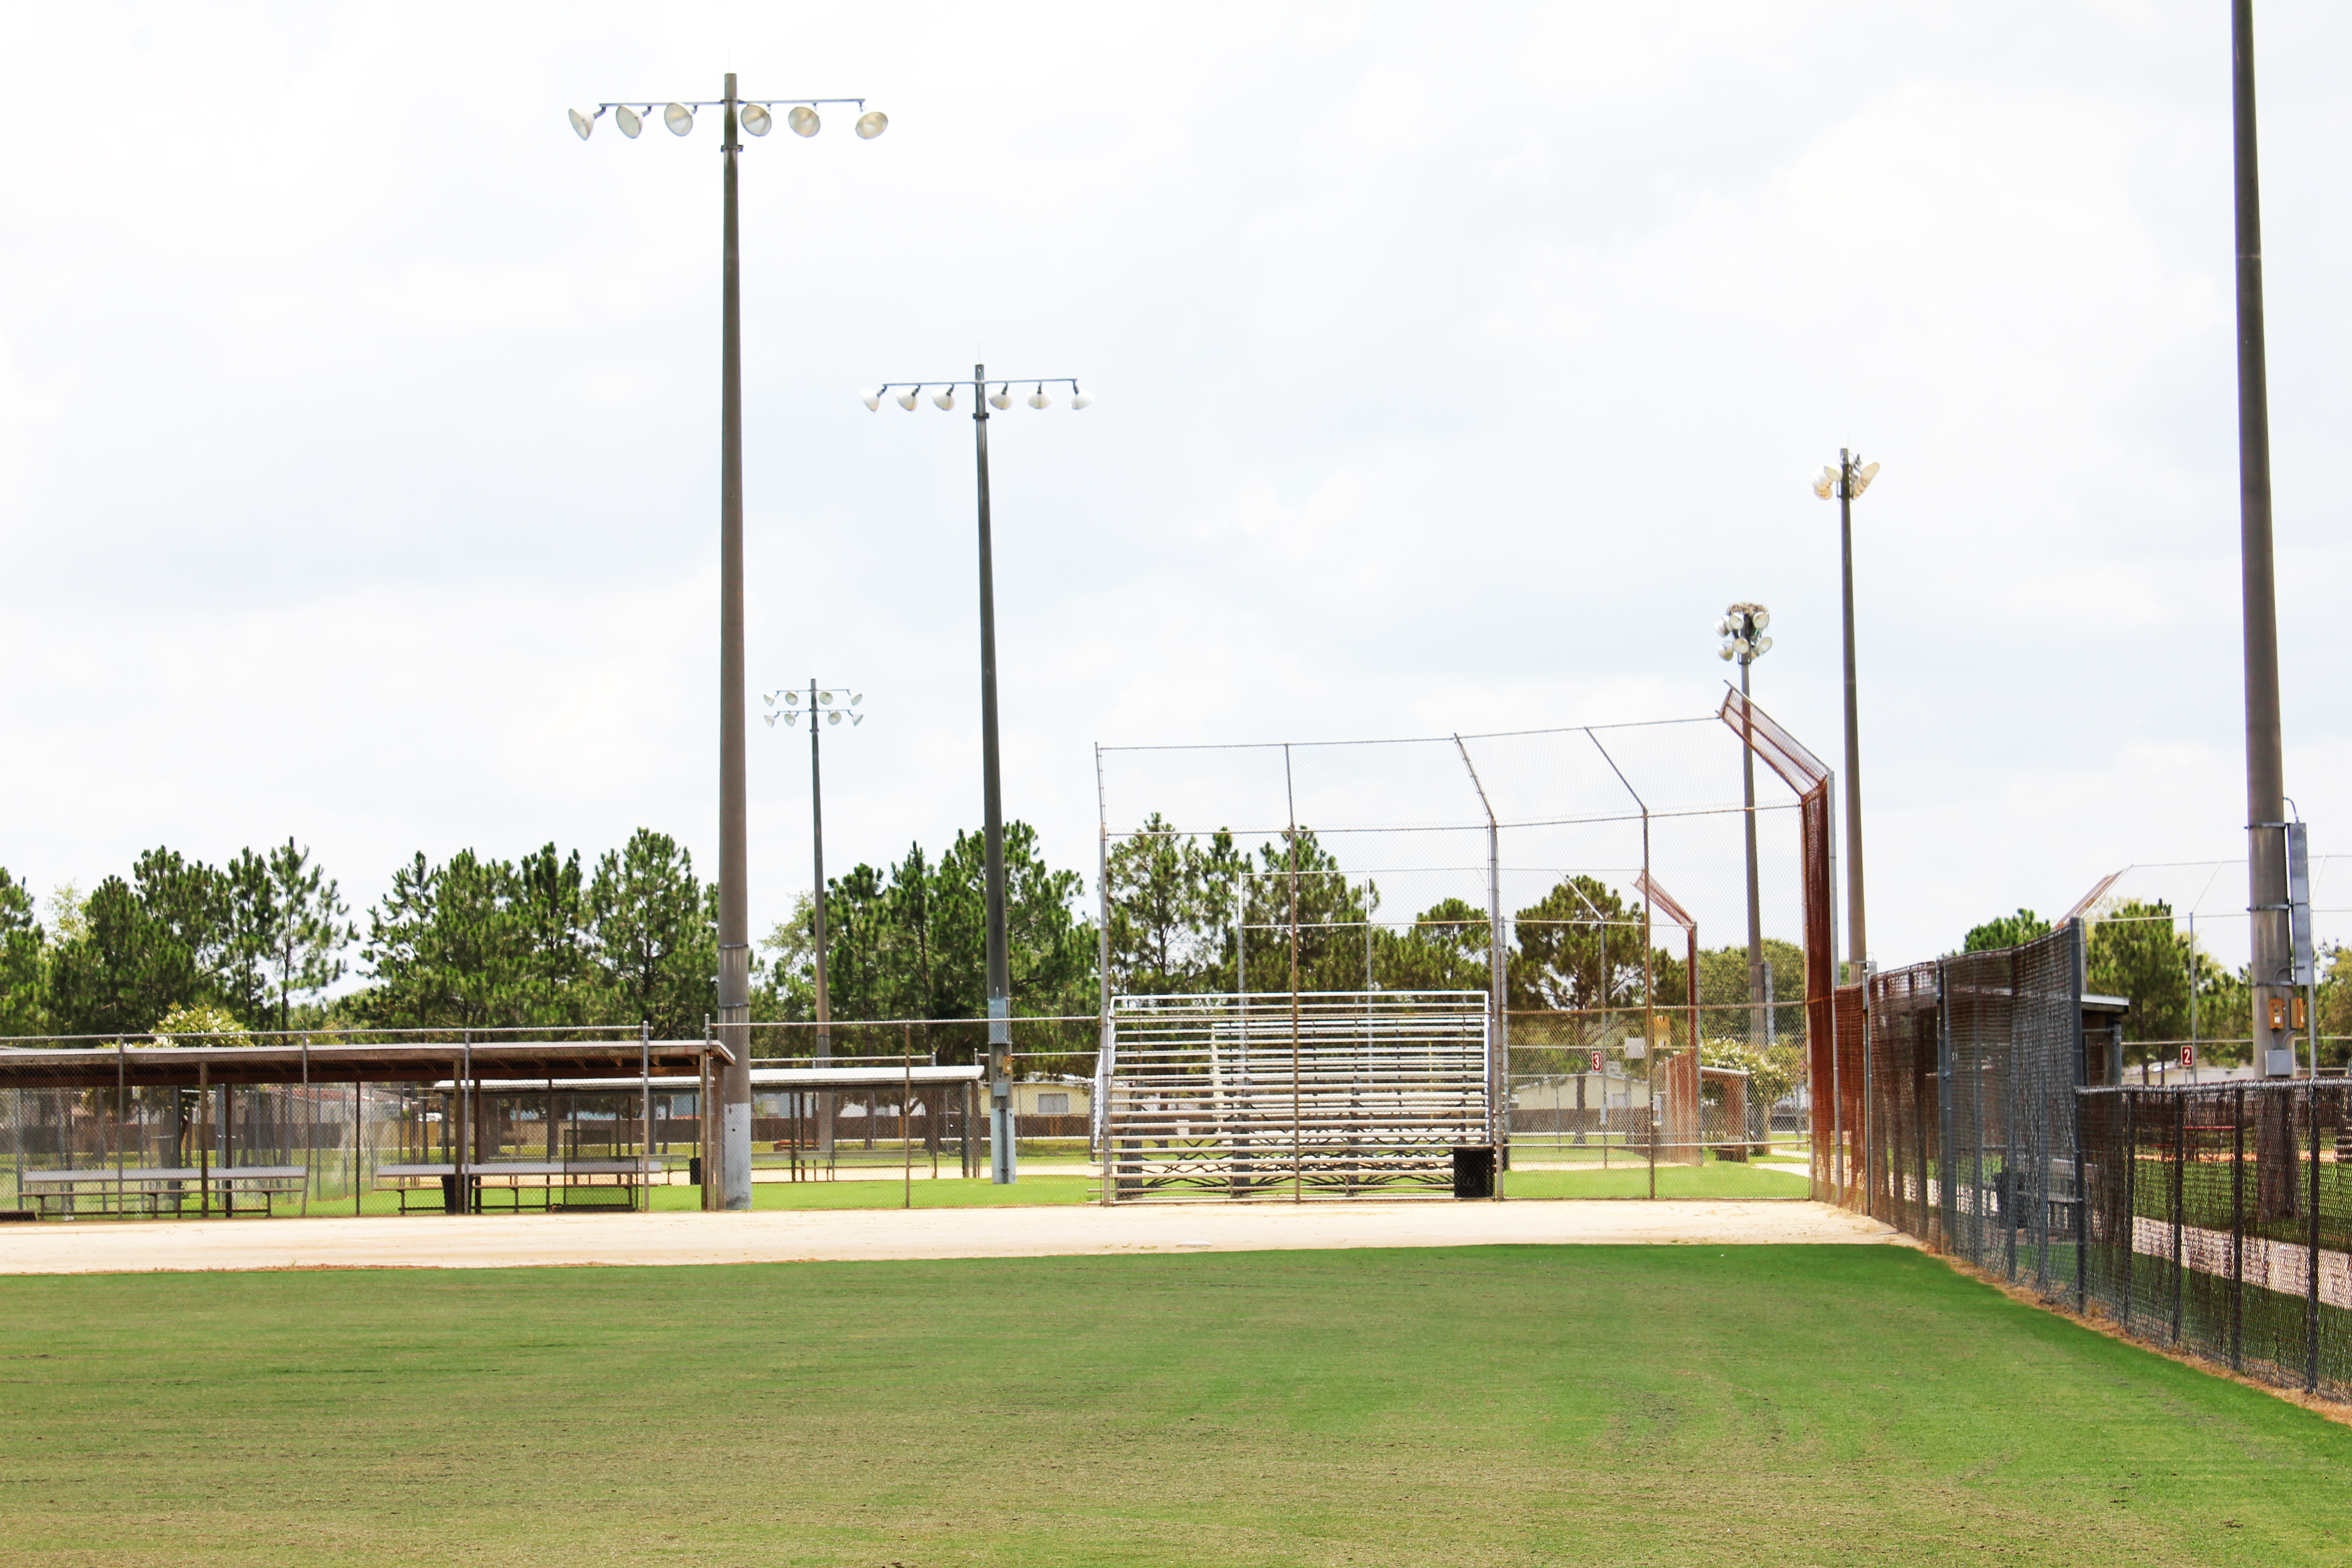 A softball field at Westside Park